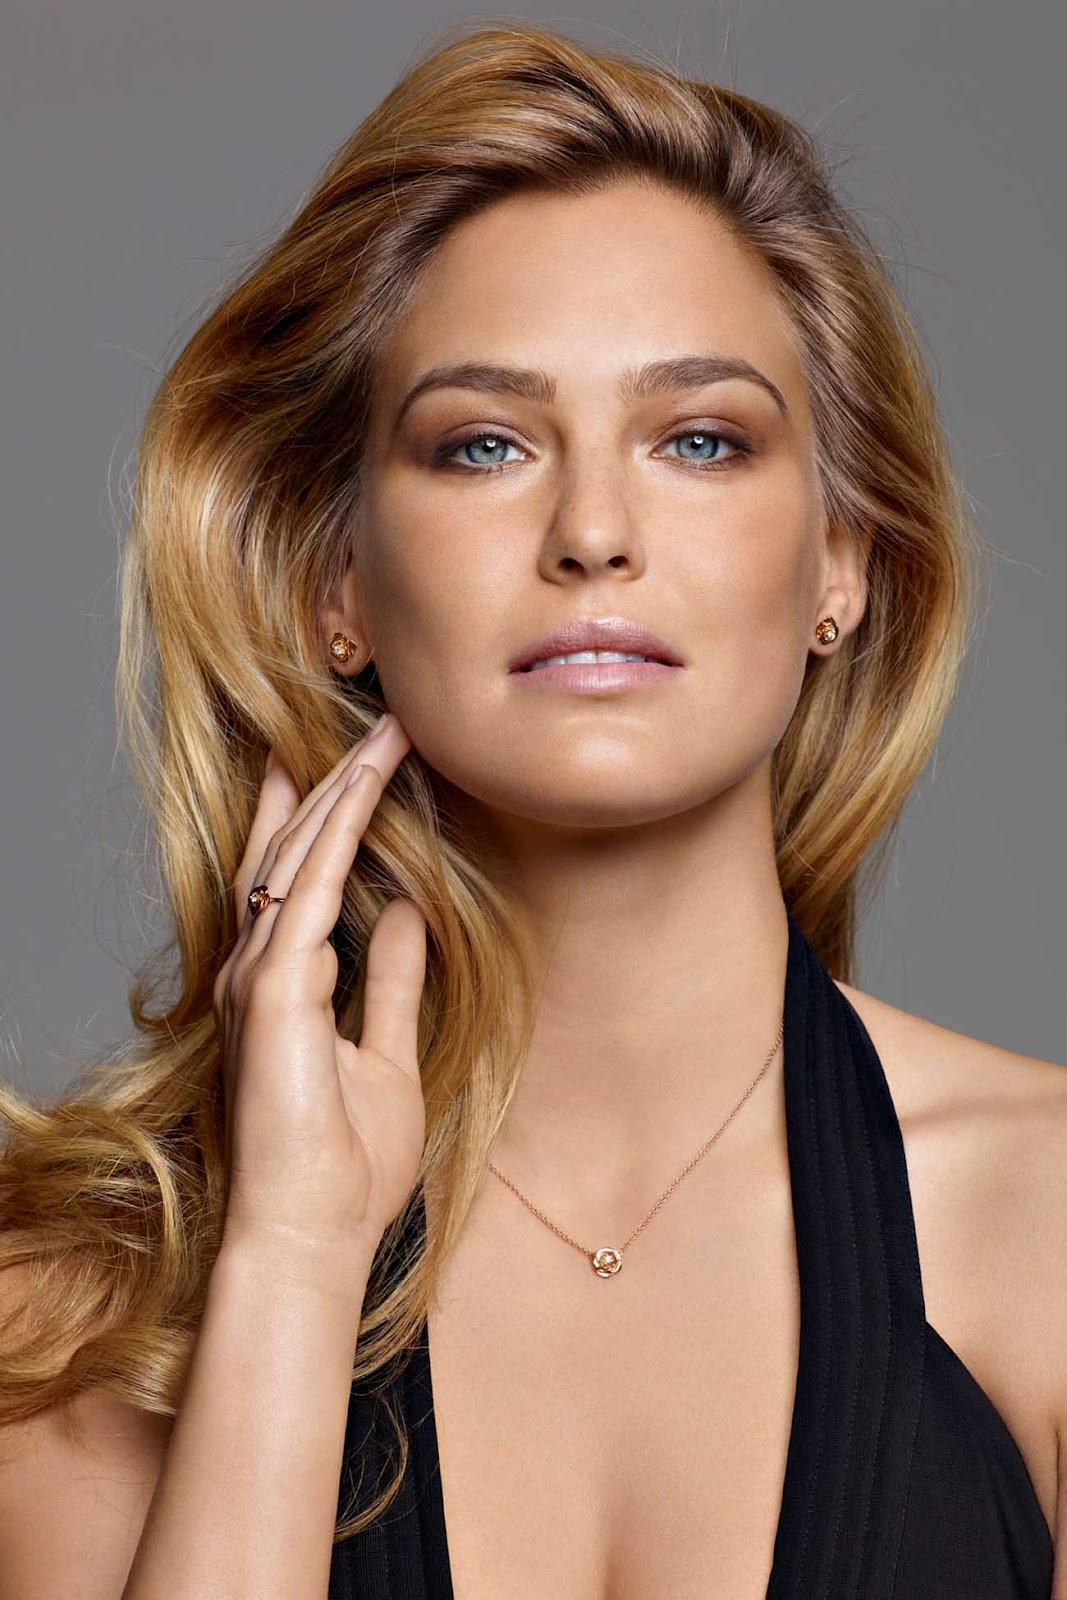 http://3.bp.blogspot.com/-zqIqSWLuuo4/T460pfer_lI/AAAAAAAACXY/pkup1H03pmU/s1600/Bar-Refaeli-in-Piaget-Rose-2012-Jewelry-Collection_5.jpg